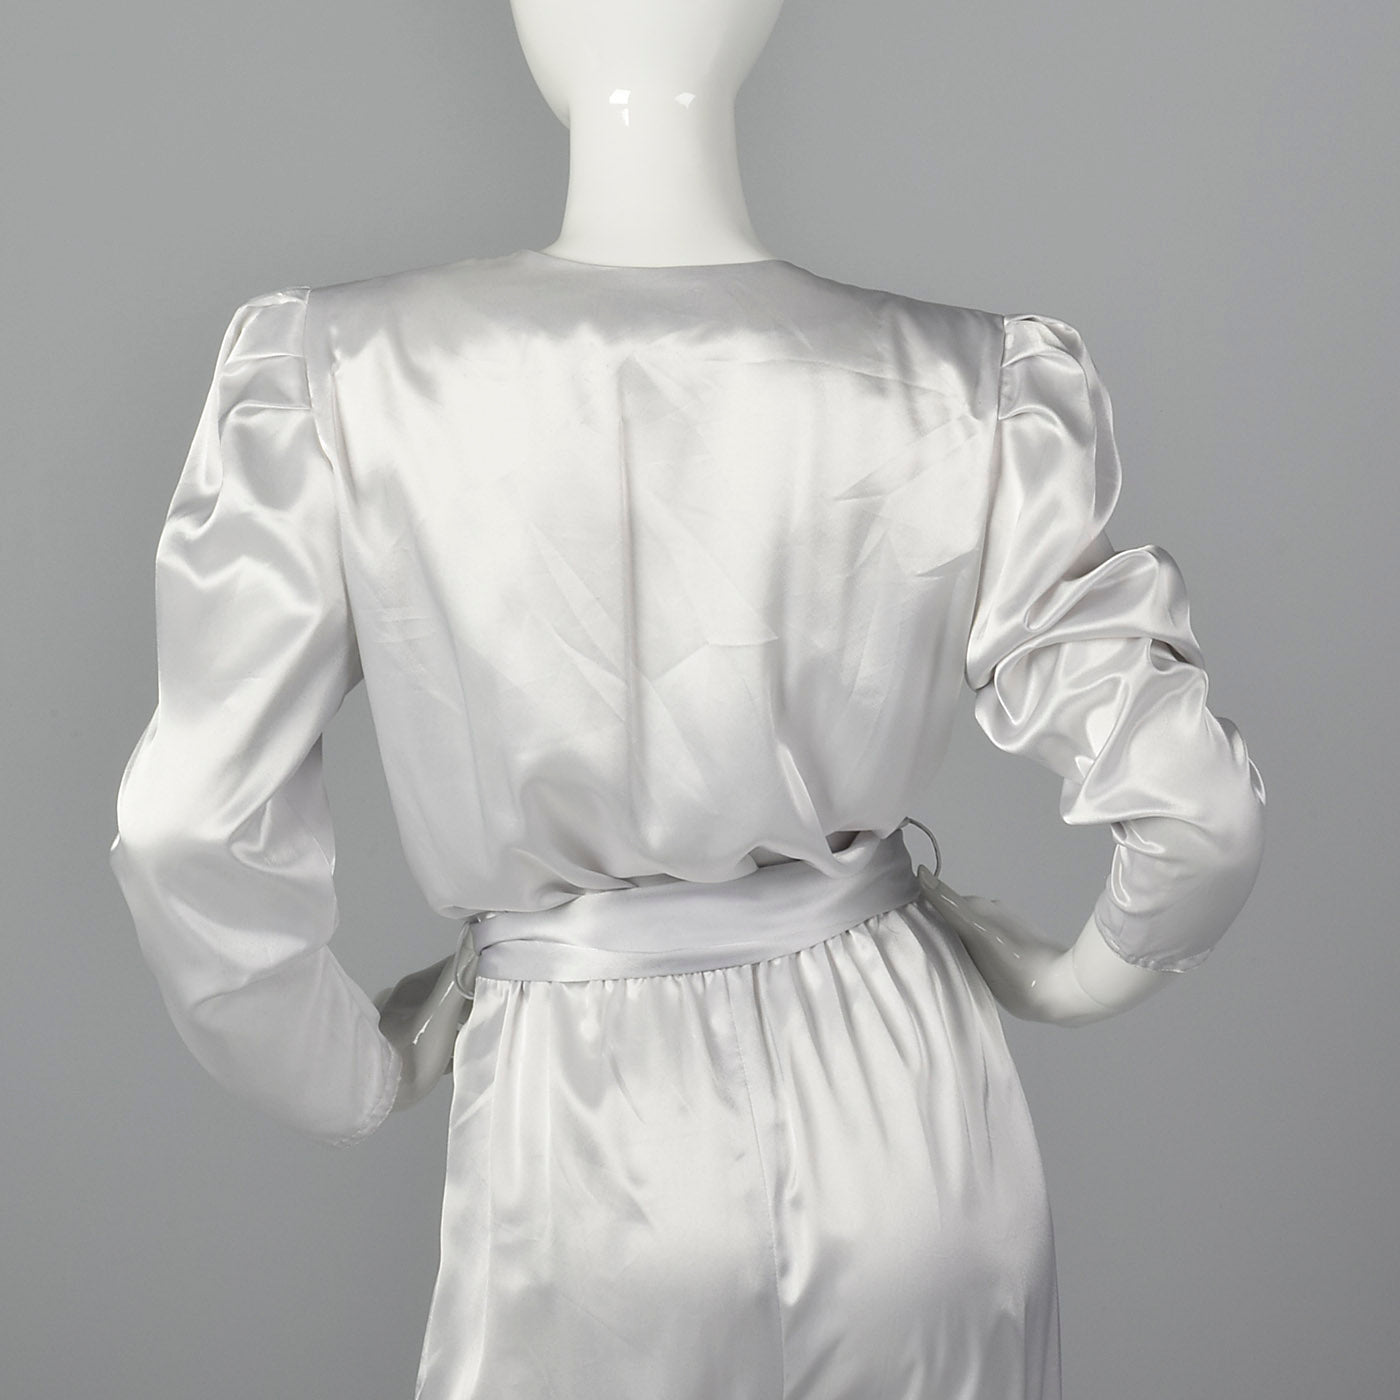 1980s Silky Silver Jumpsuit with Sash Belt